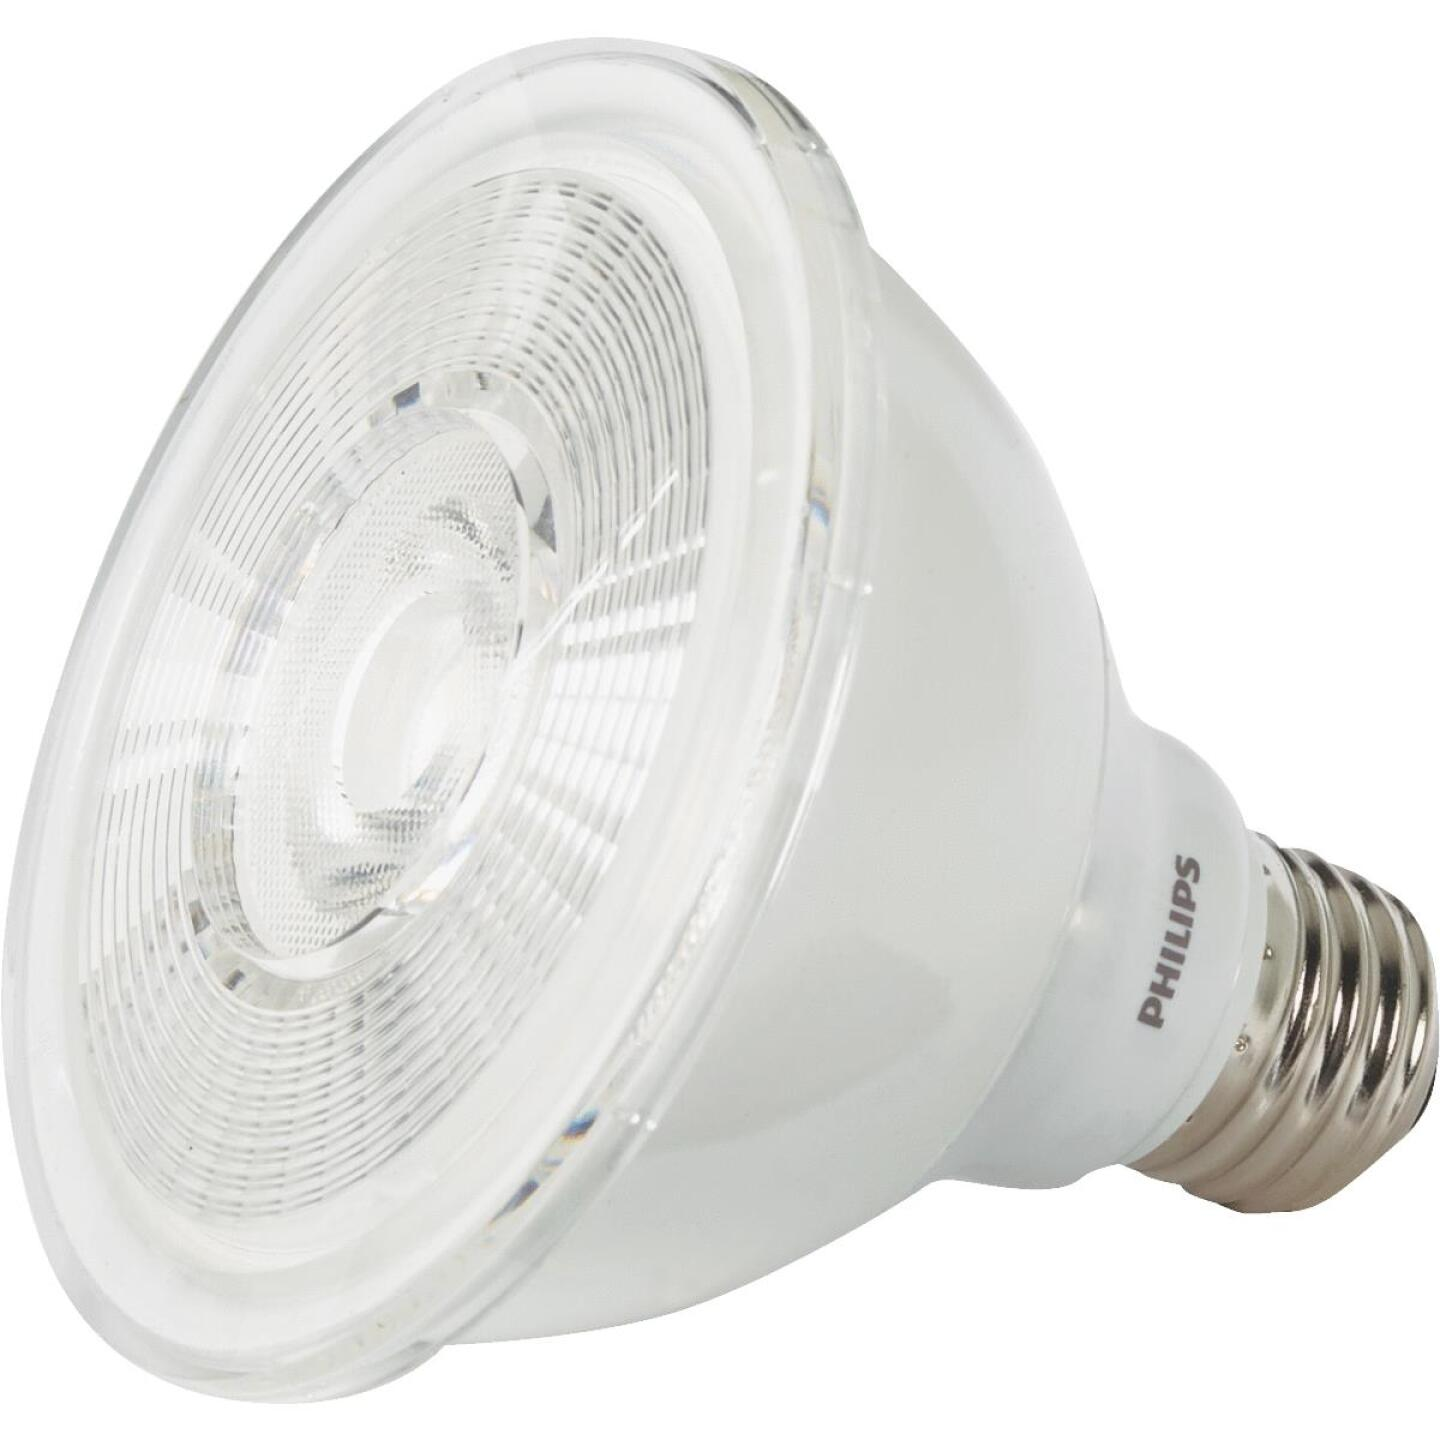 Philips 75W Equivalent Bright White PAR30 Short Neck Medium Dimmable LED Floodlight Light Bulb with 25 Deg. Beam Image 3